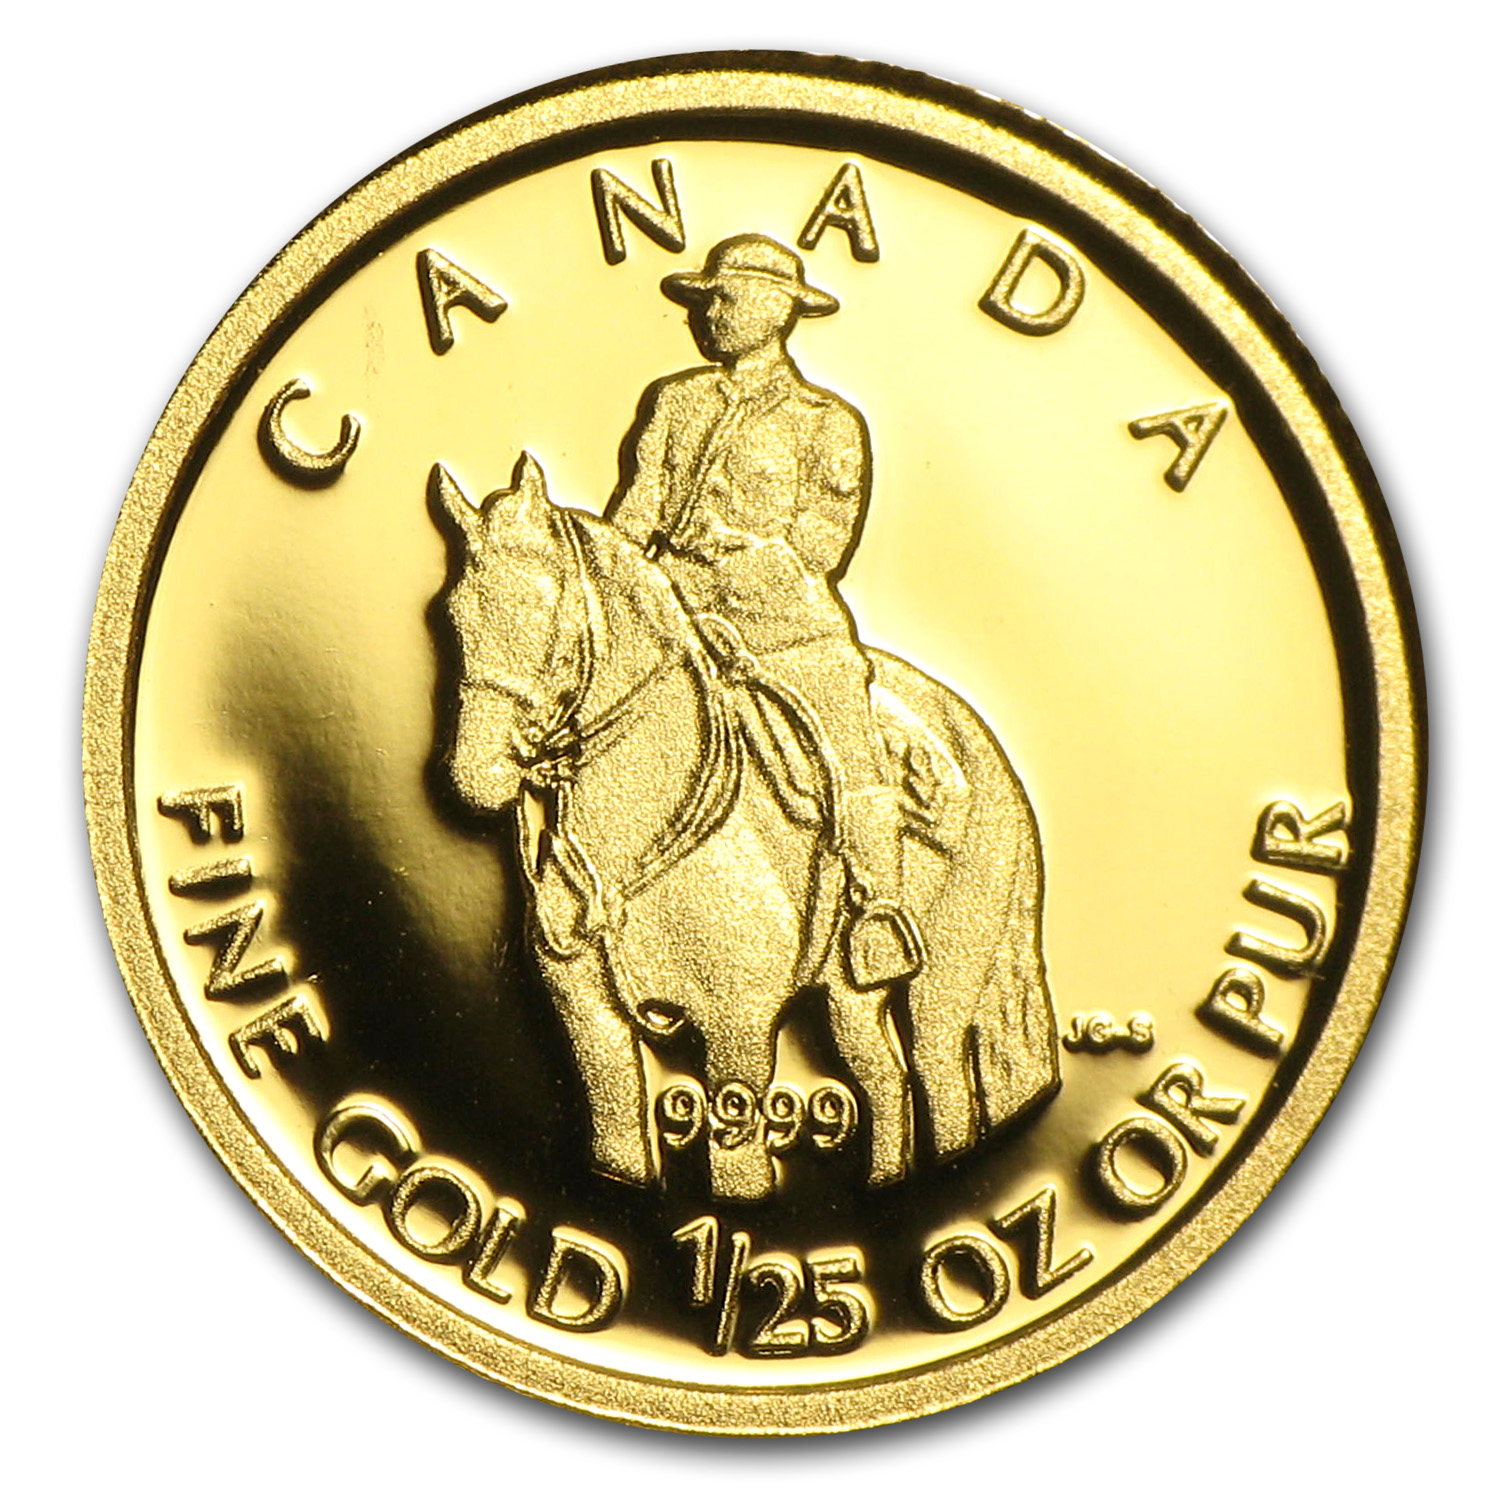 2010 Canada 1/25 oz Proof Gold $0.50 RCM Police